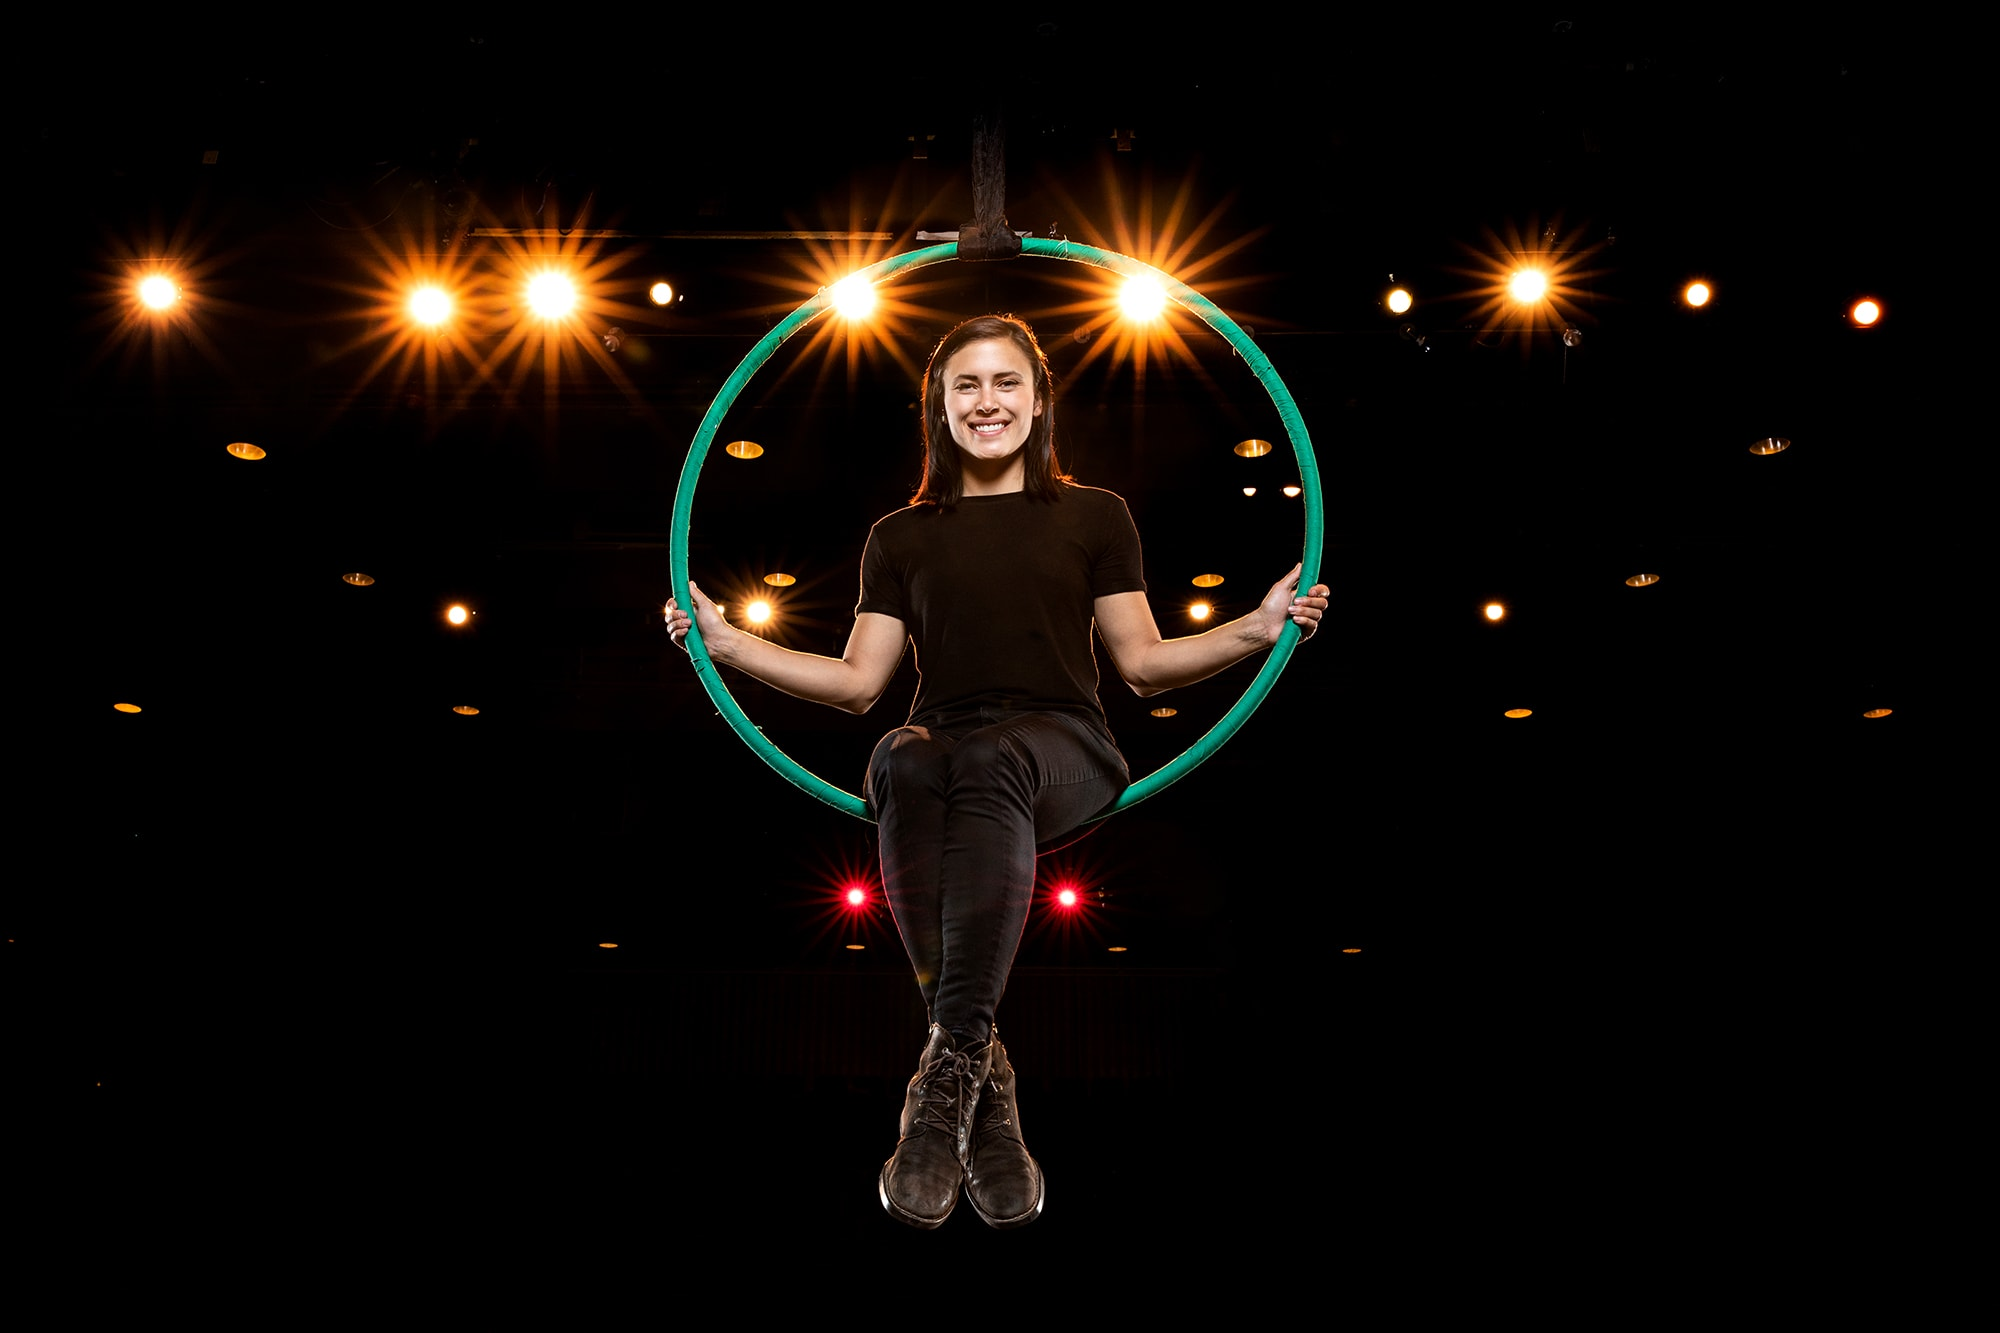 a woman sits on a hanging hoop with lights behind her